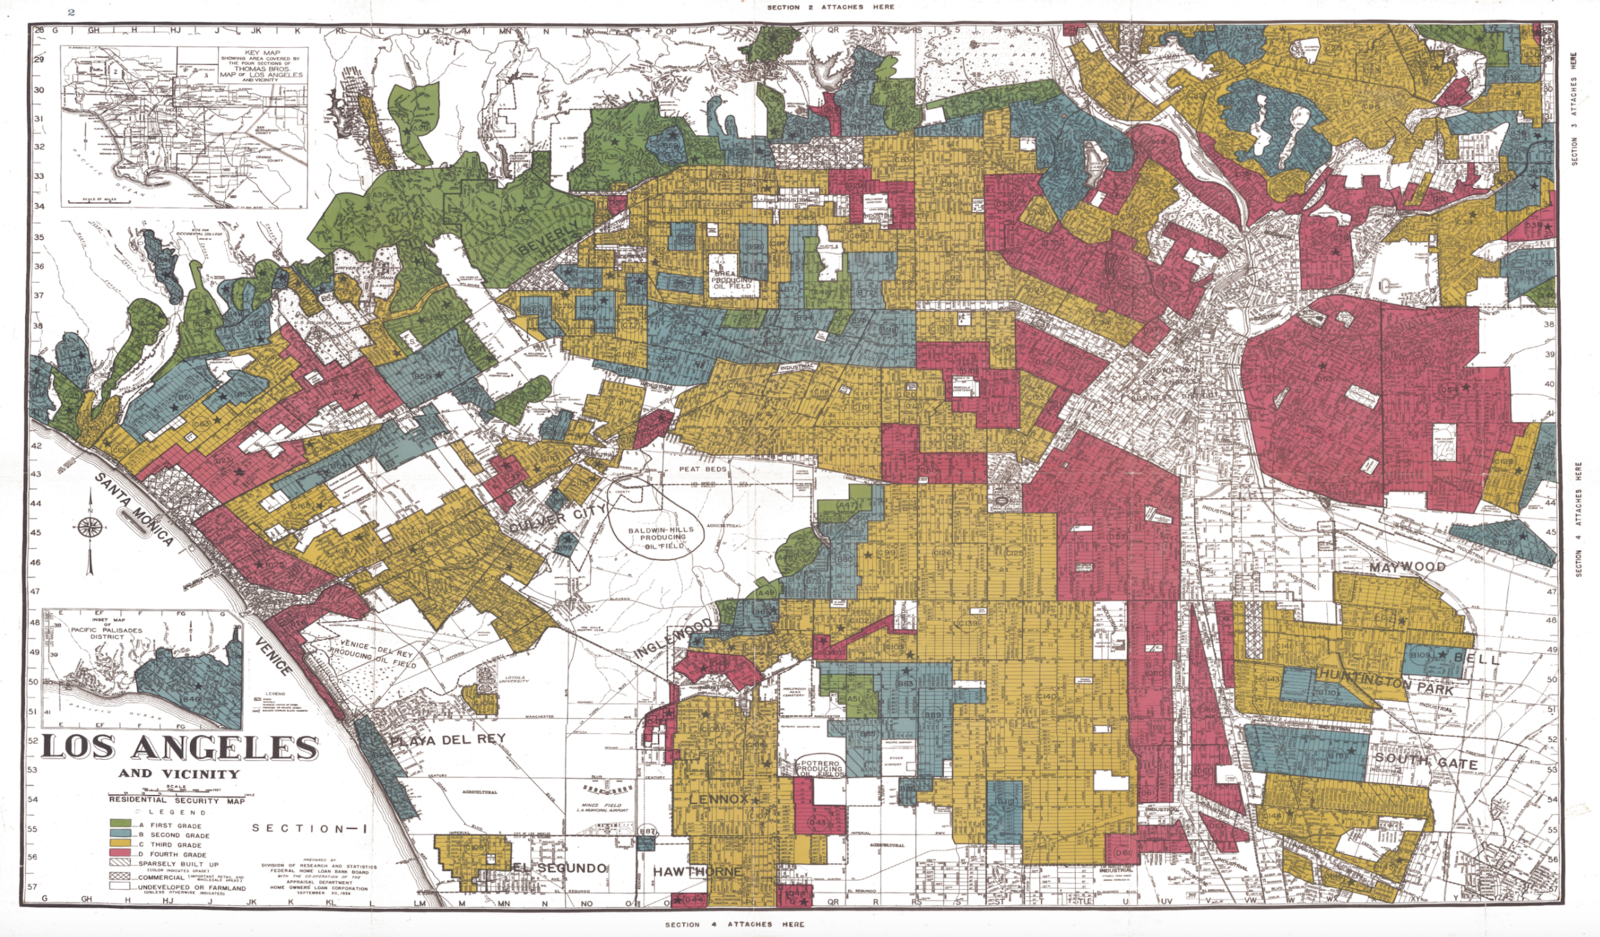 Photo 1 of 6 in 21 Resources on Redlining's Role in Cementing the American Wealth Gap from How to Submit or Contribute to Dwell